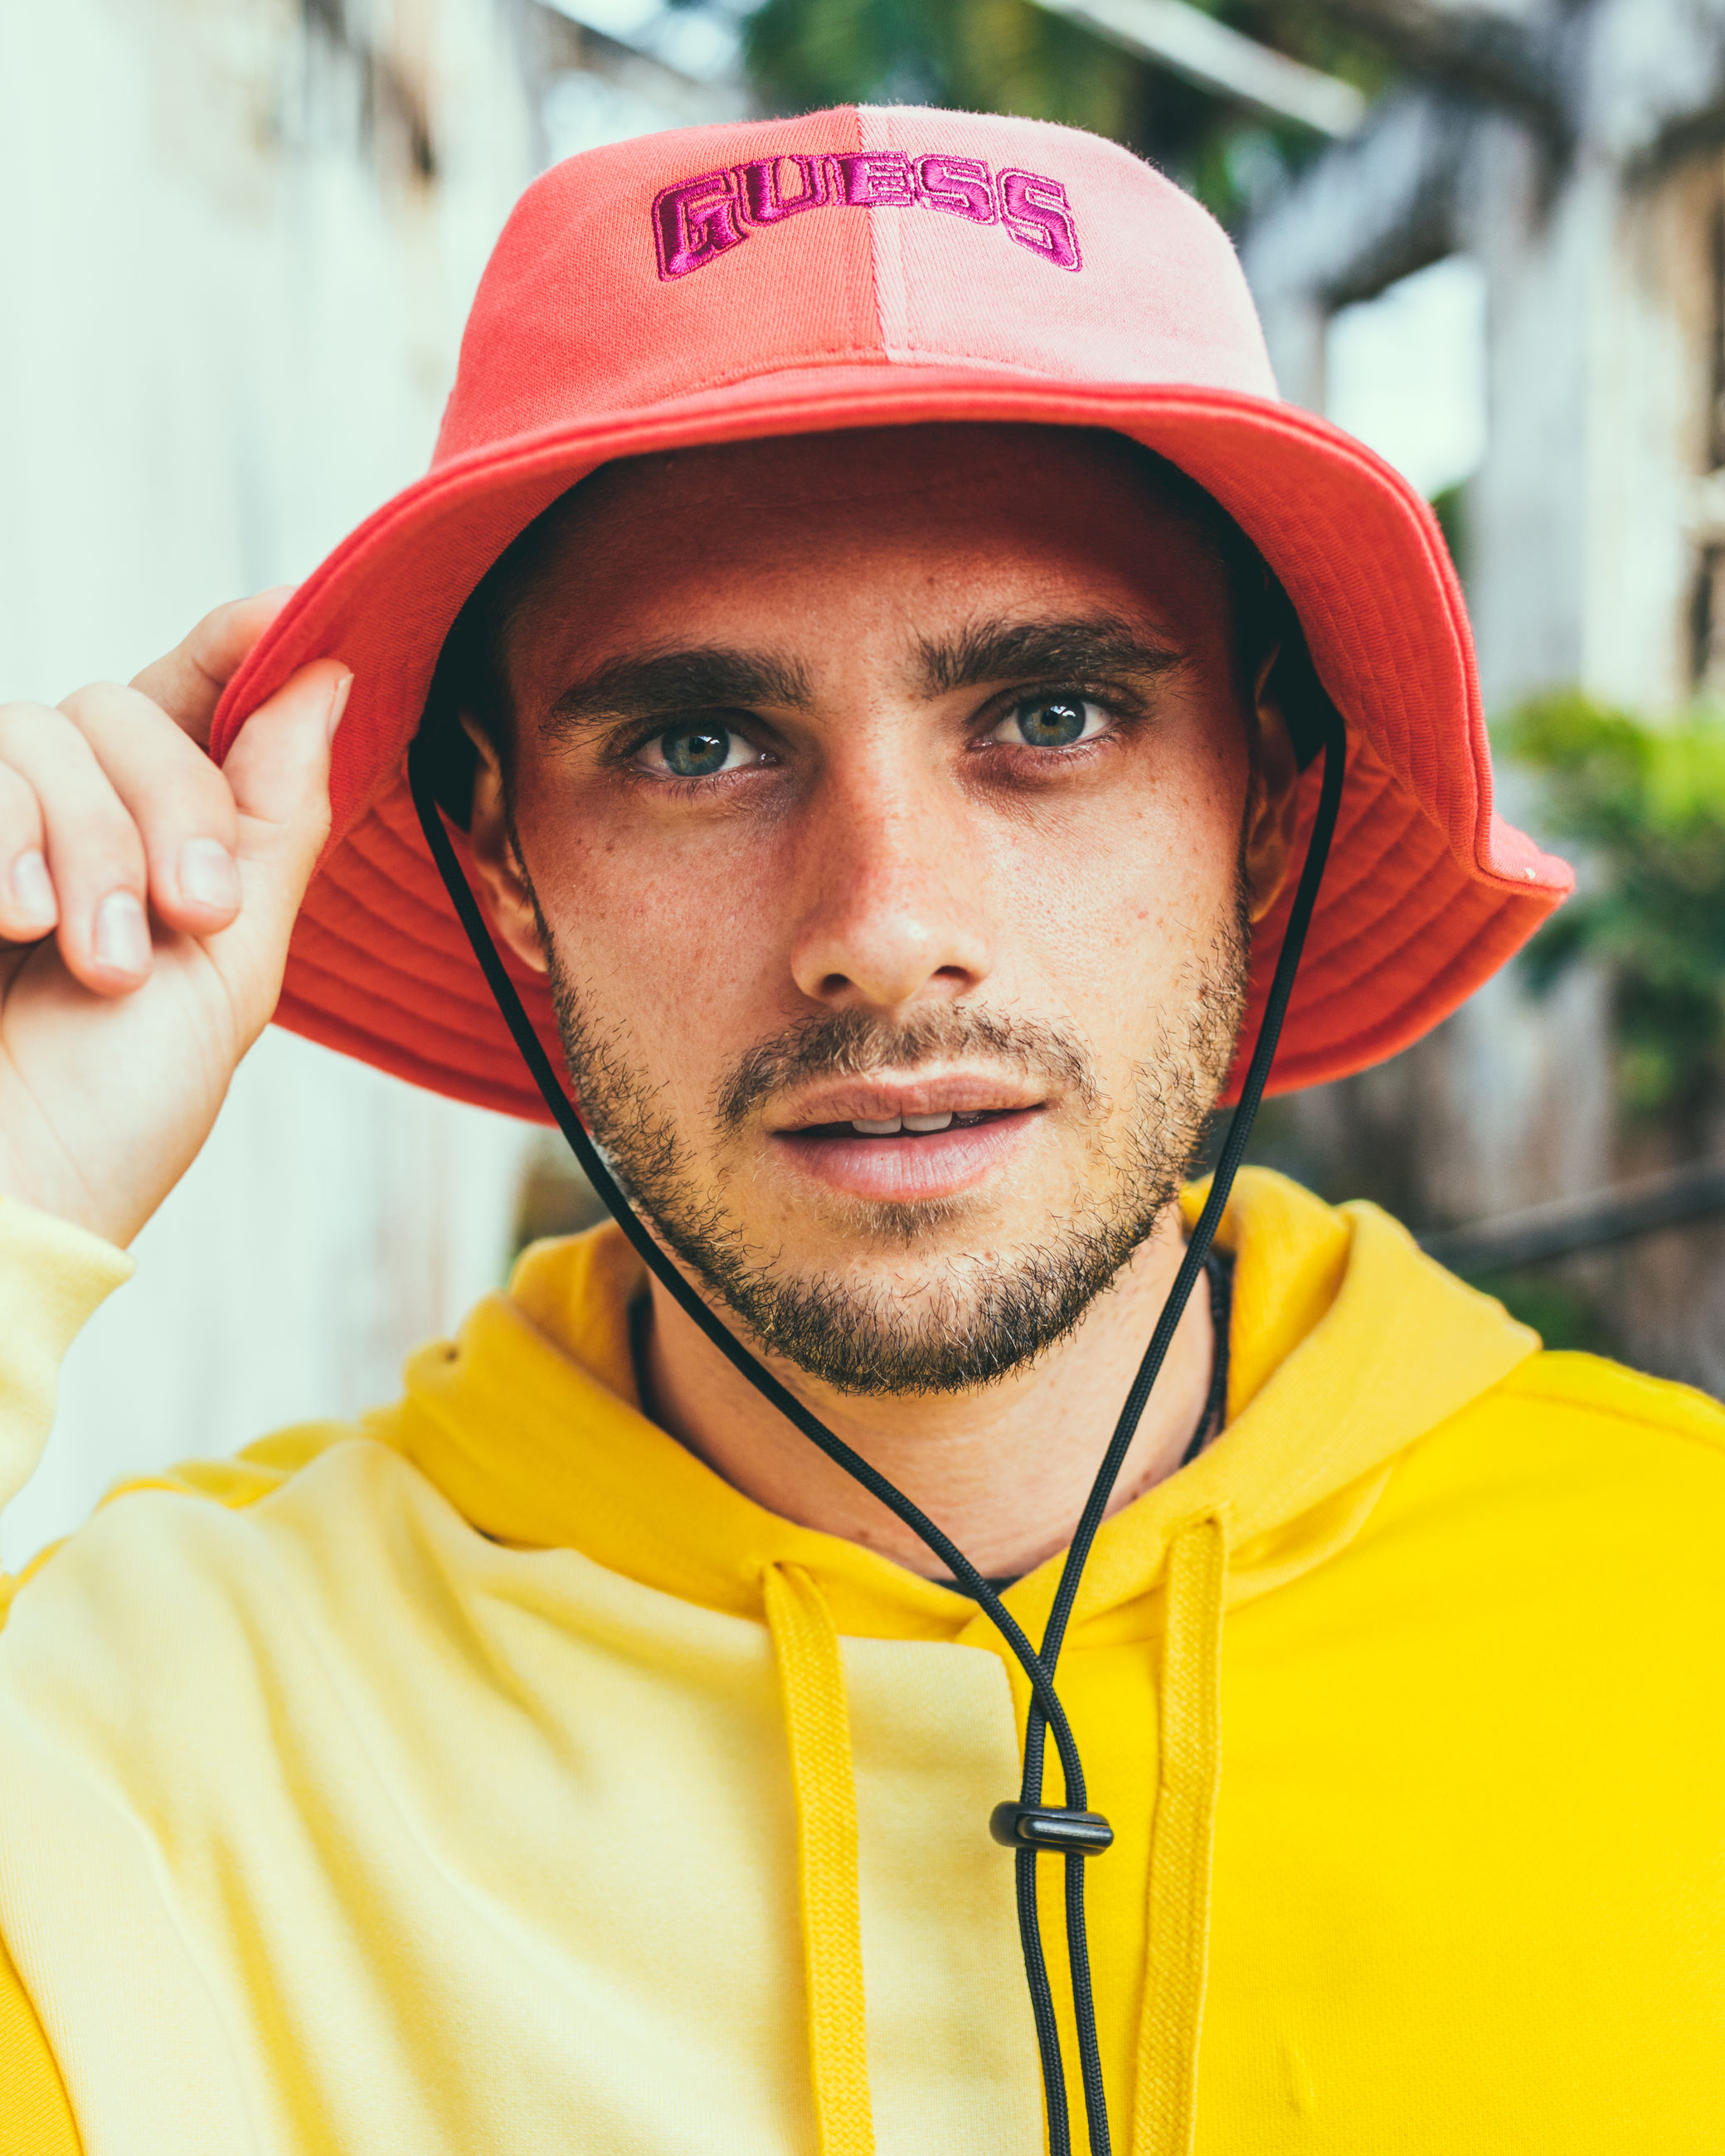 portrait, one person, adult, clothing, headshot, yellow, looking at camera, person, sports, men, beard, young adult, hat, jockey, front view, facial hair, lifestyles, day, sports clothing, outdoors, close-up, headwear, focus on foreground, athlete, helmet, occupation, protection, city, human face, leisure activity